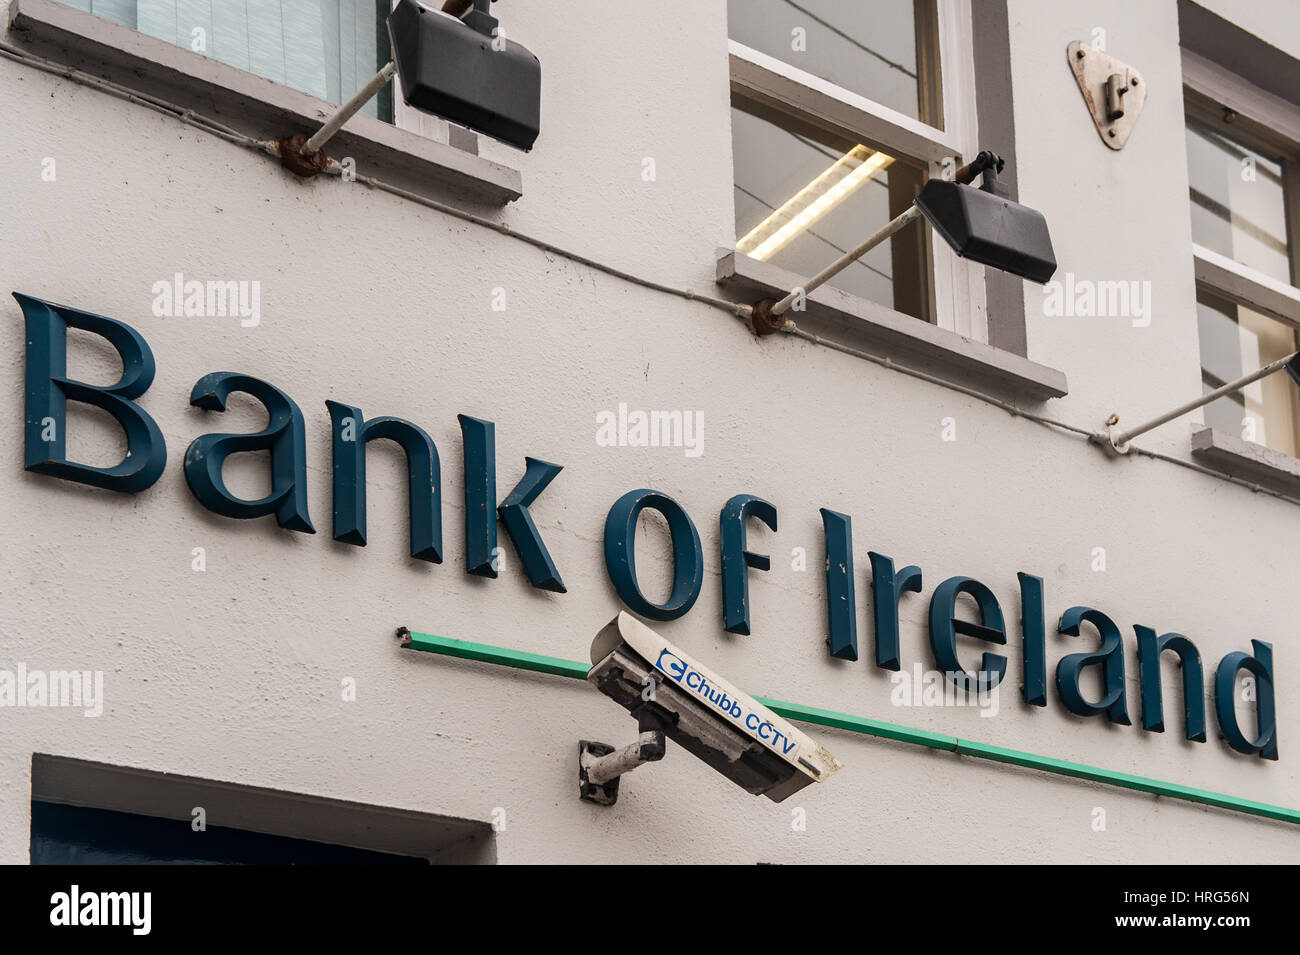 Bank of Ireland sign with copy space. - Stock Image